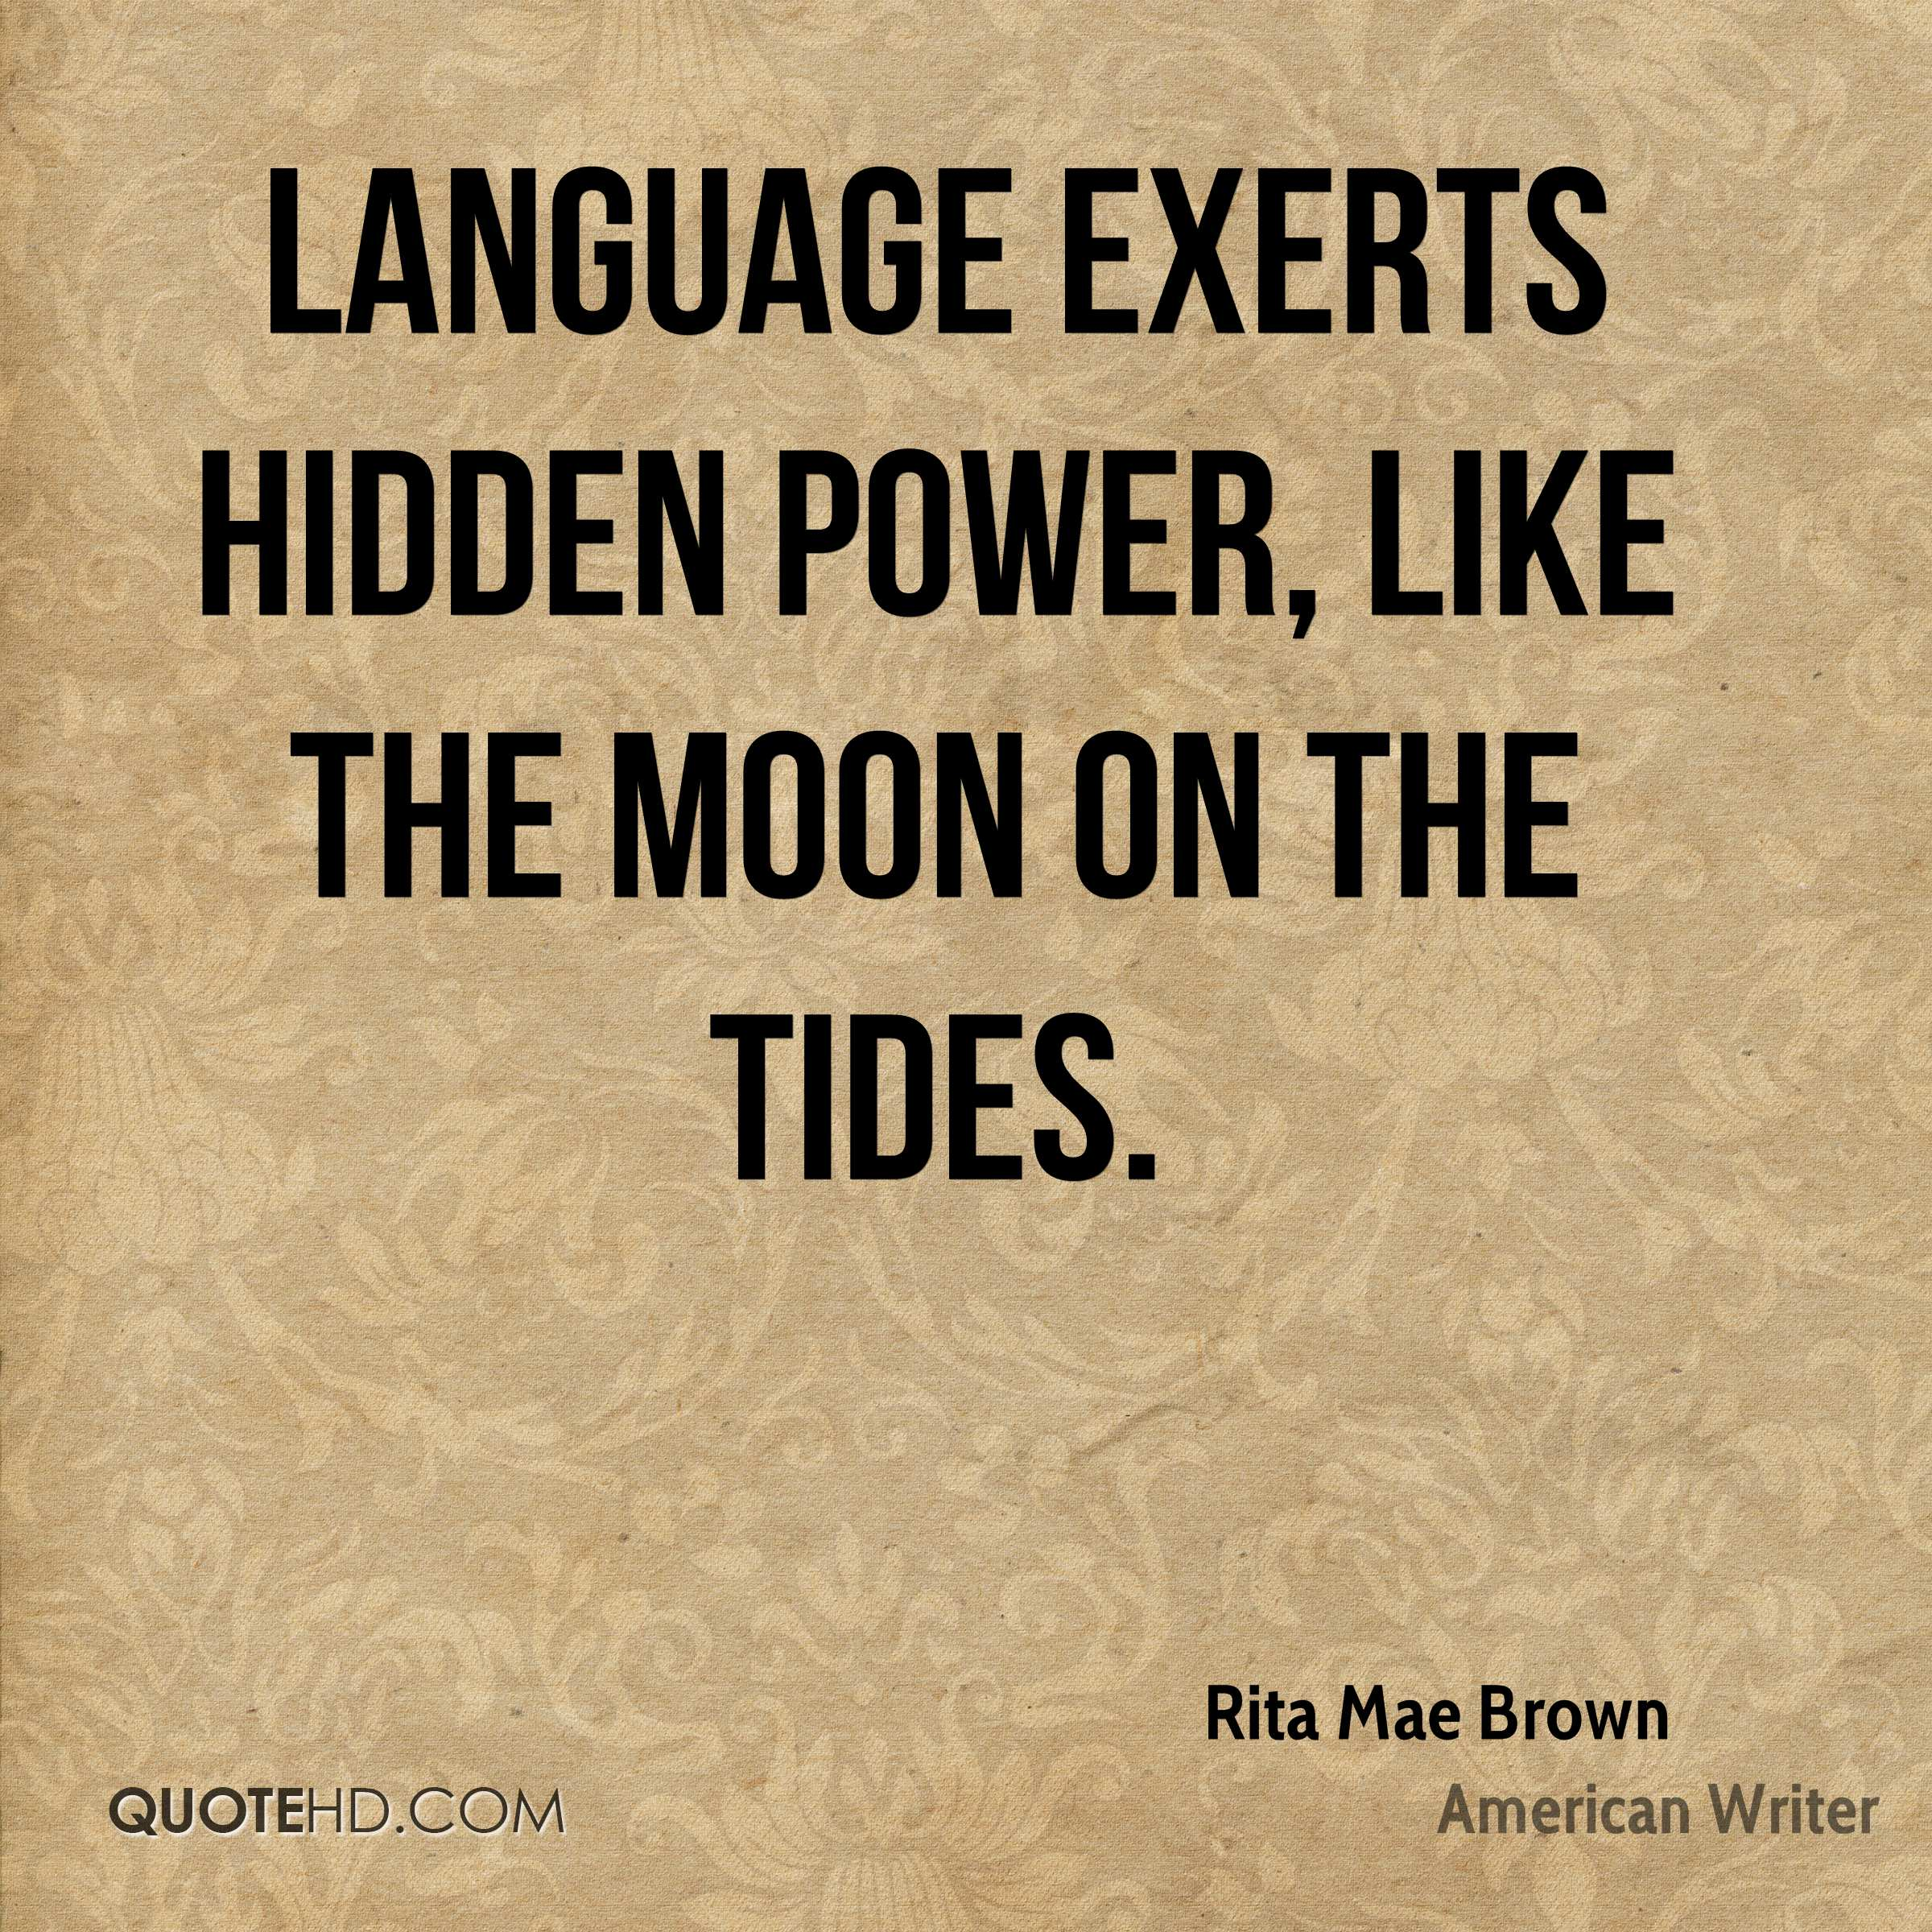 language exerts hidden power like a Why language is a catalyst to transforming education insights 27 april 2017 language exerts hidden power, like the moon on the tides rita mae brown.